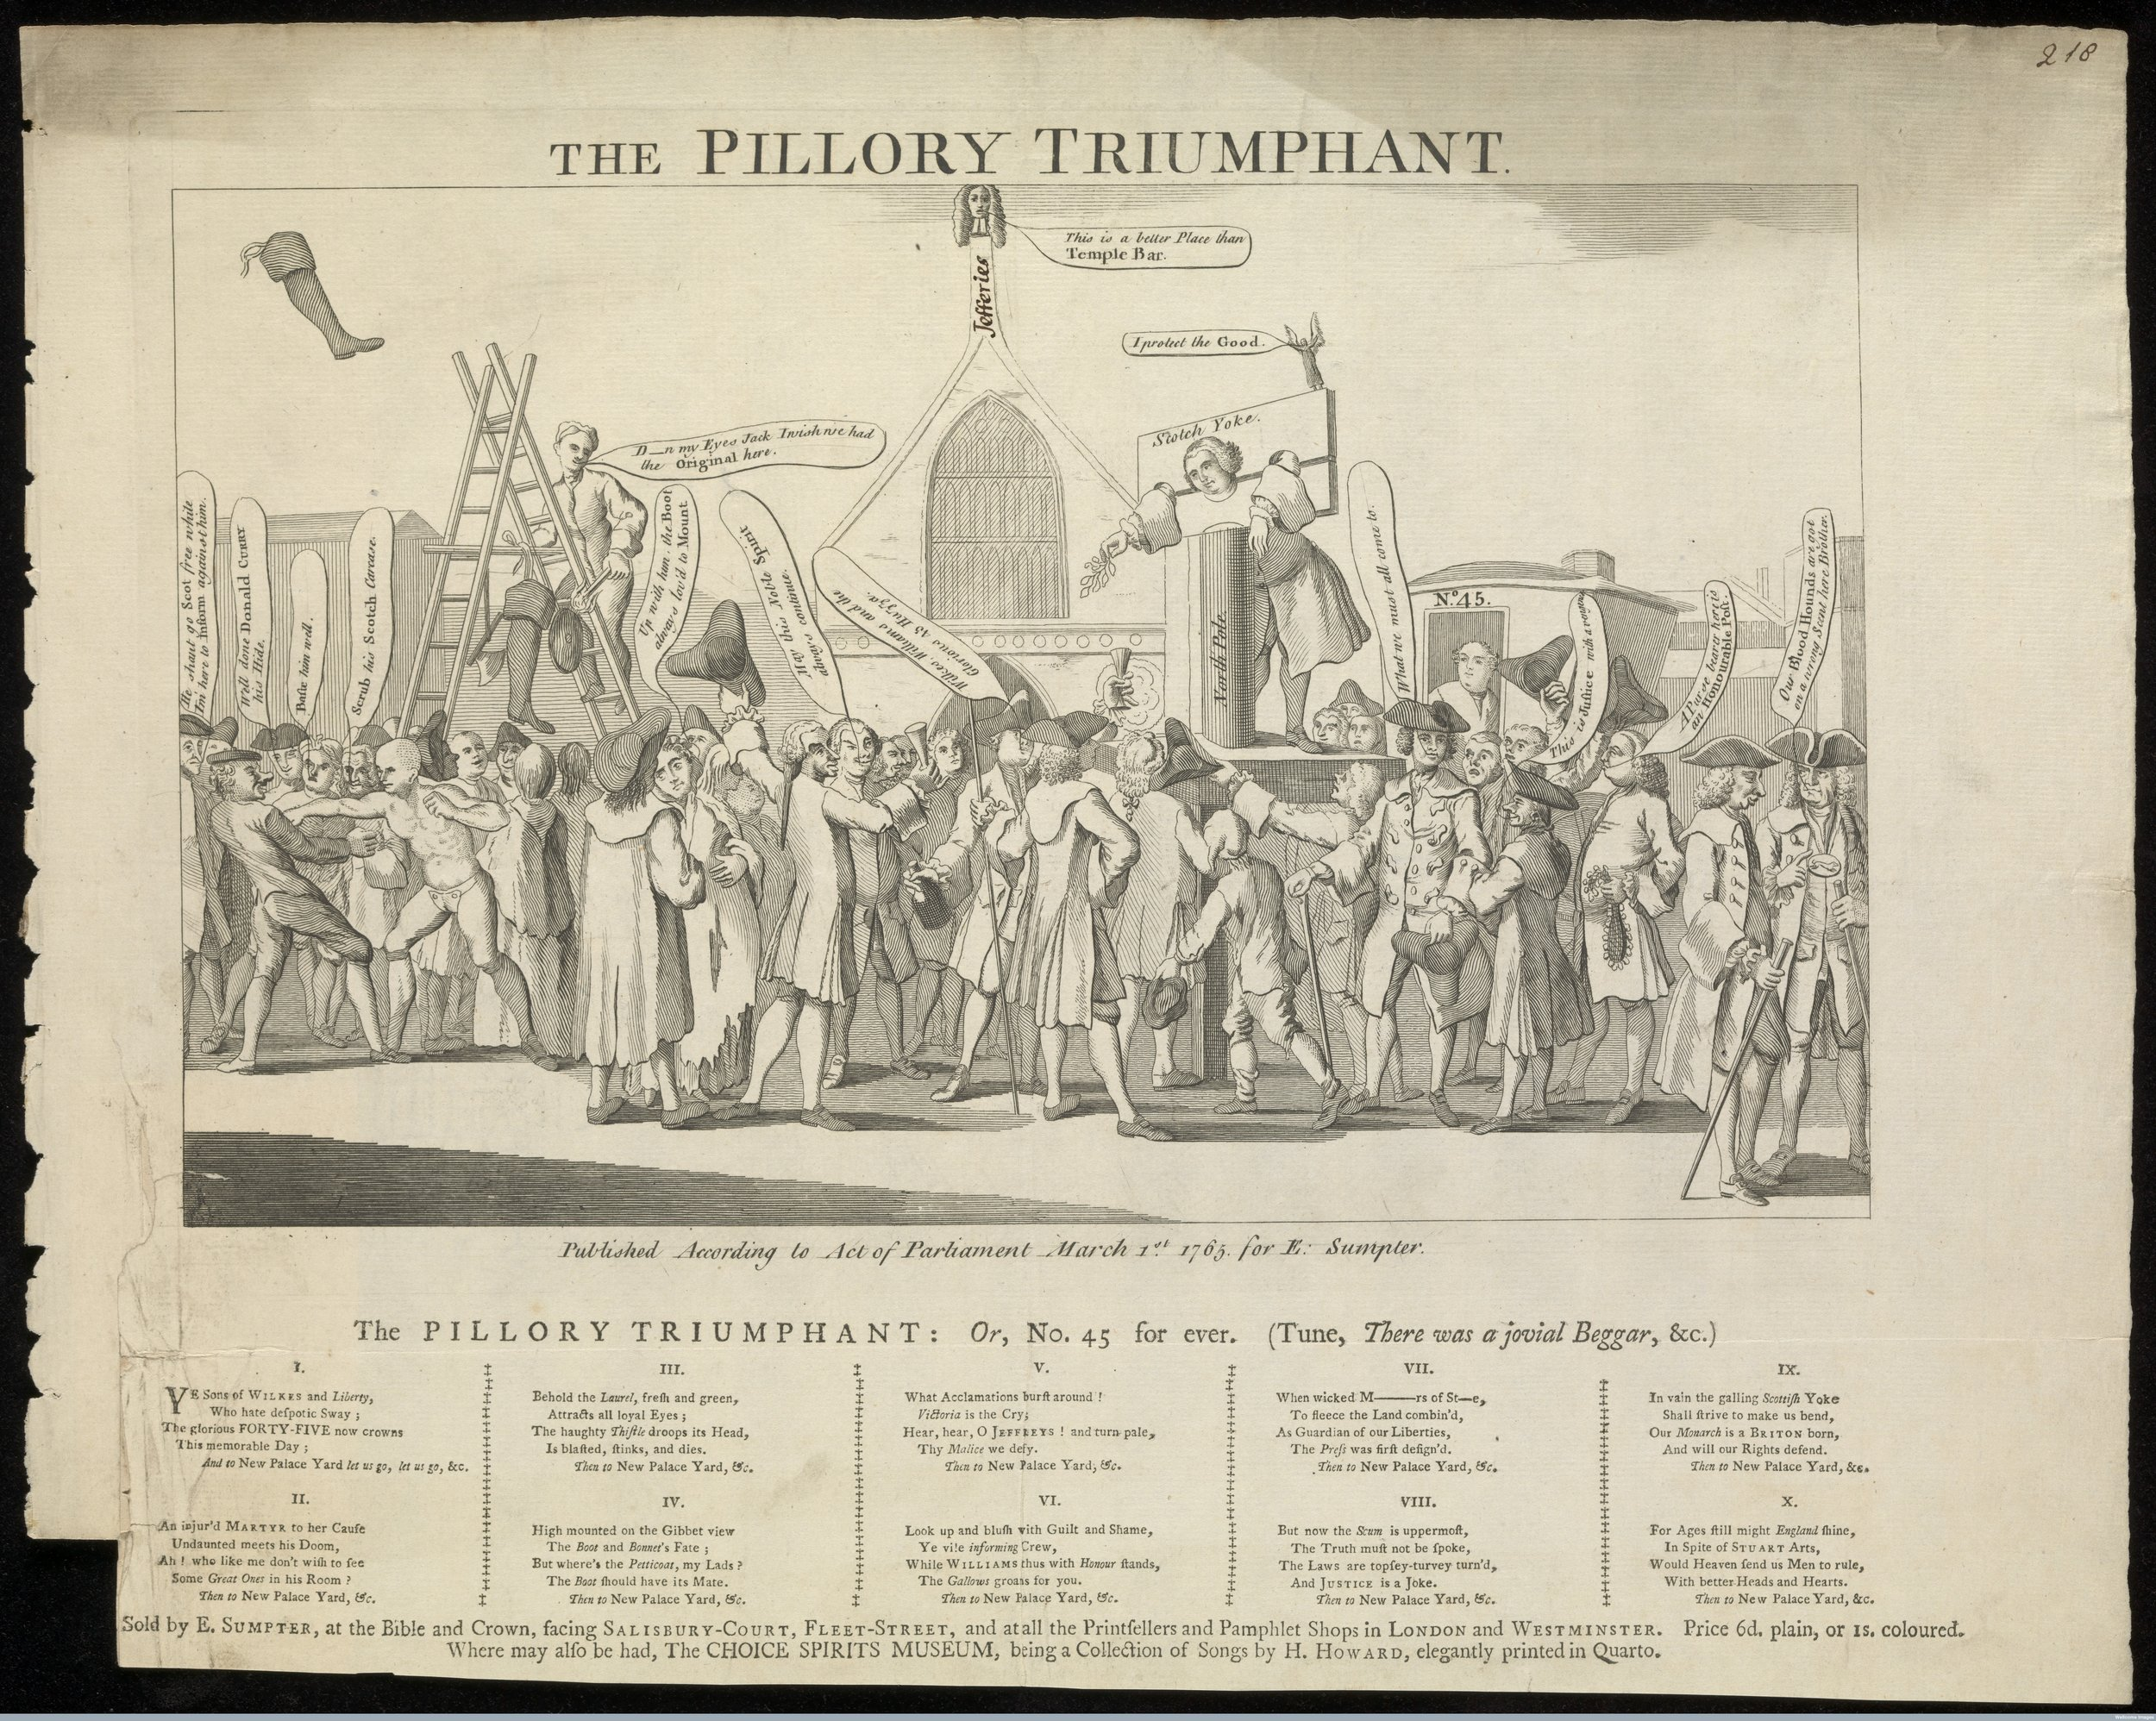 The Pillory Triumphant (1765).  Wellcome Library no. 581543i . Image used under Creative Commons 4.0.